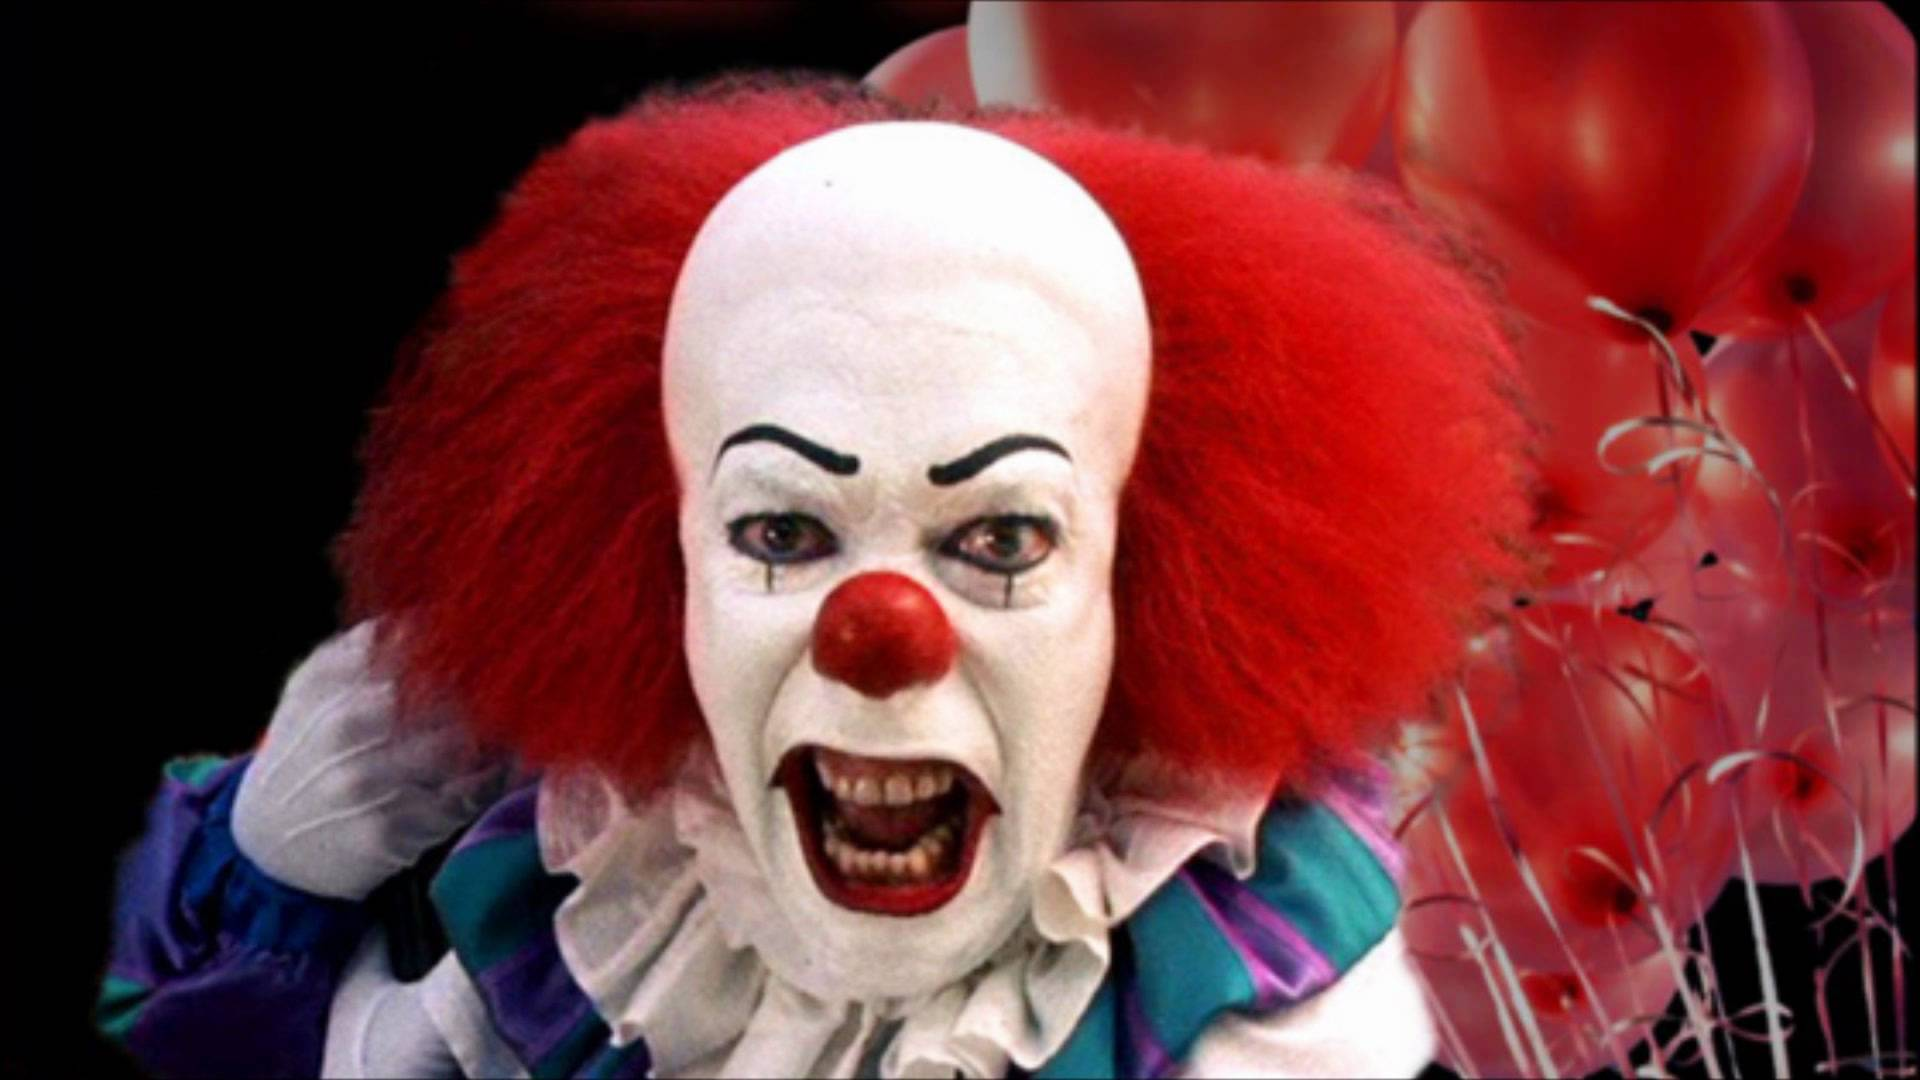 Real clowns complain that American Horror Story is 'making clowns scary'